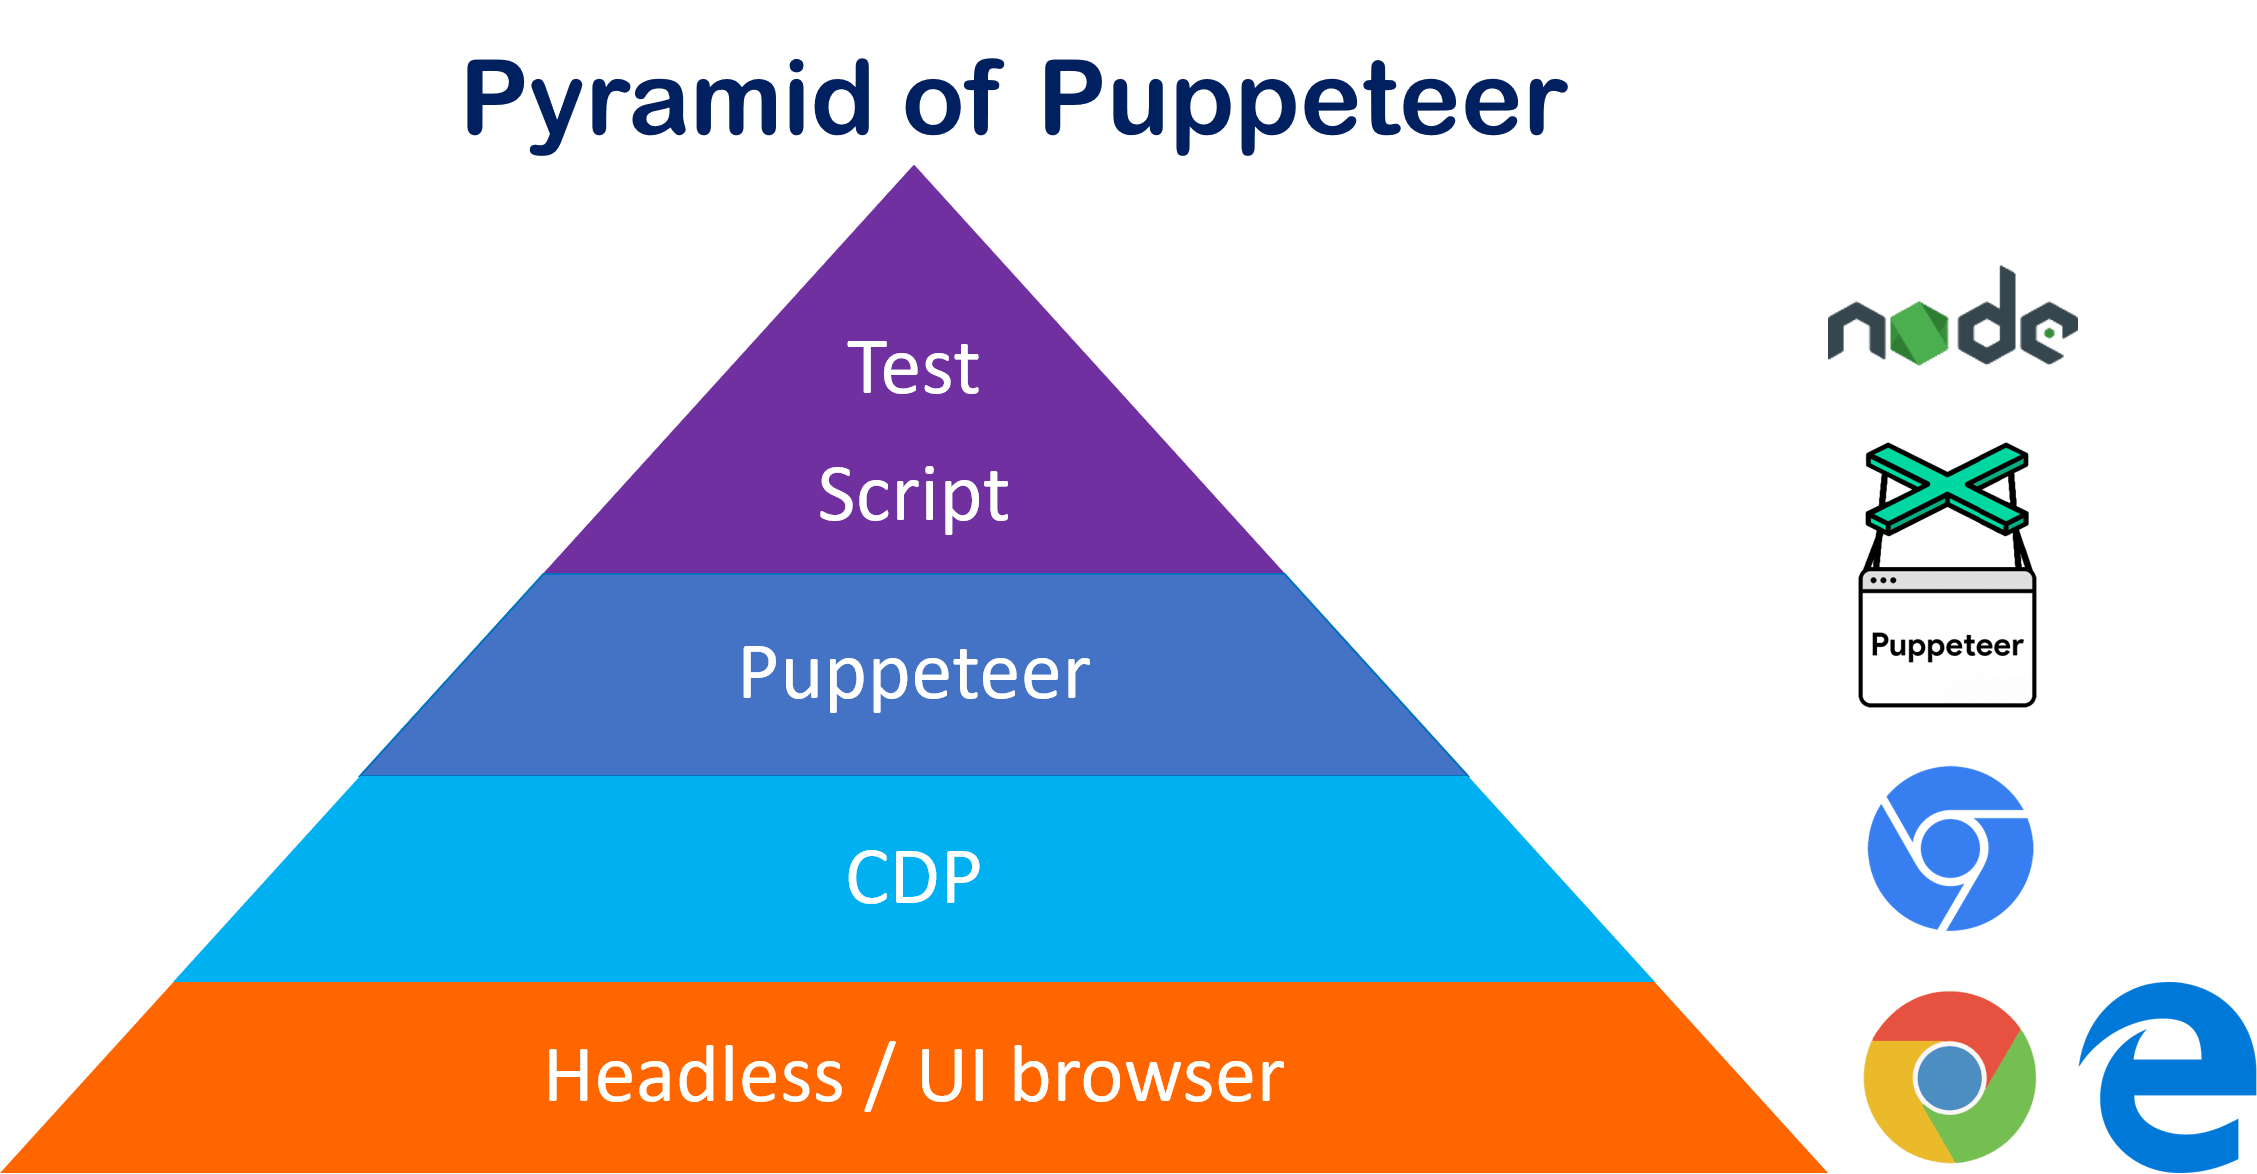 puppeteer-pyramid-architecture-nodejs-chrome-edge